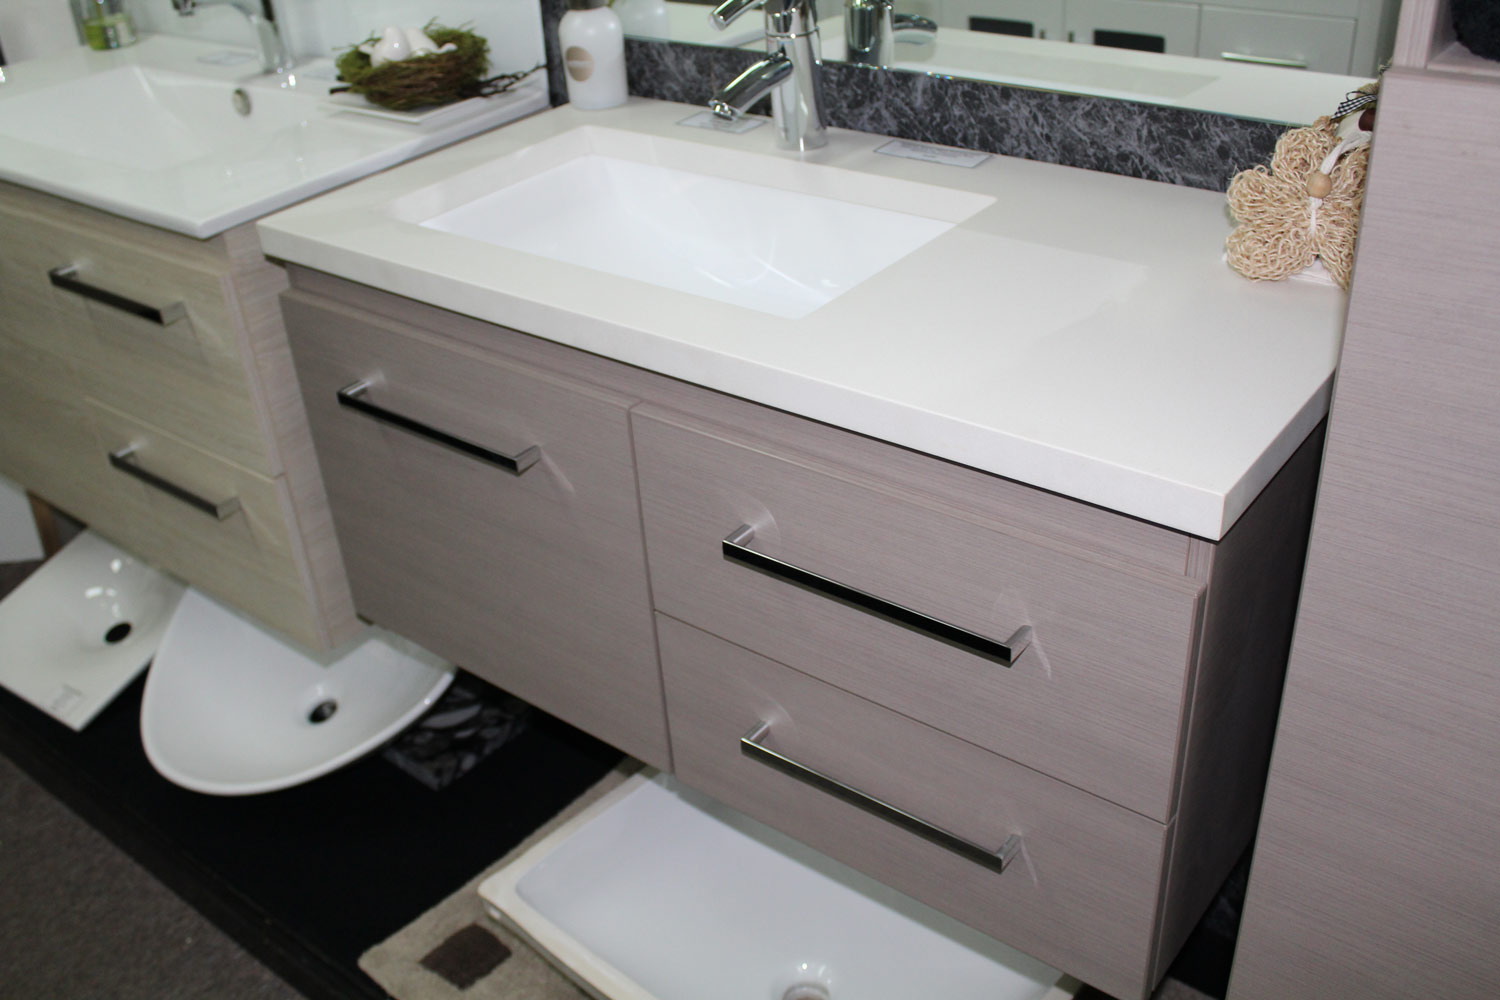 Timberline Dakota 900mm Wall Hung Vanity Bathroom